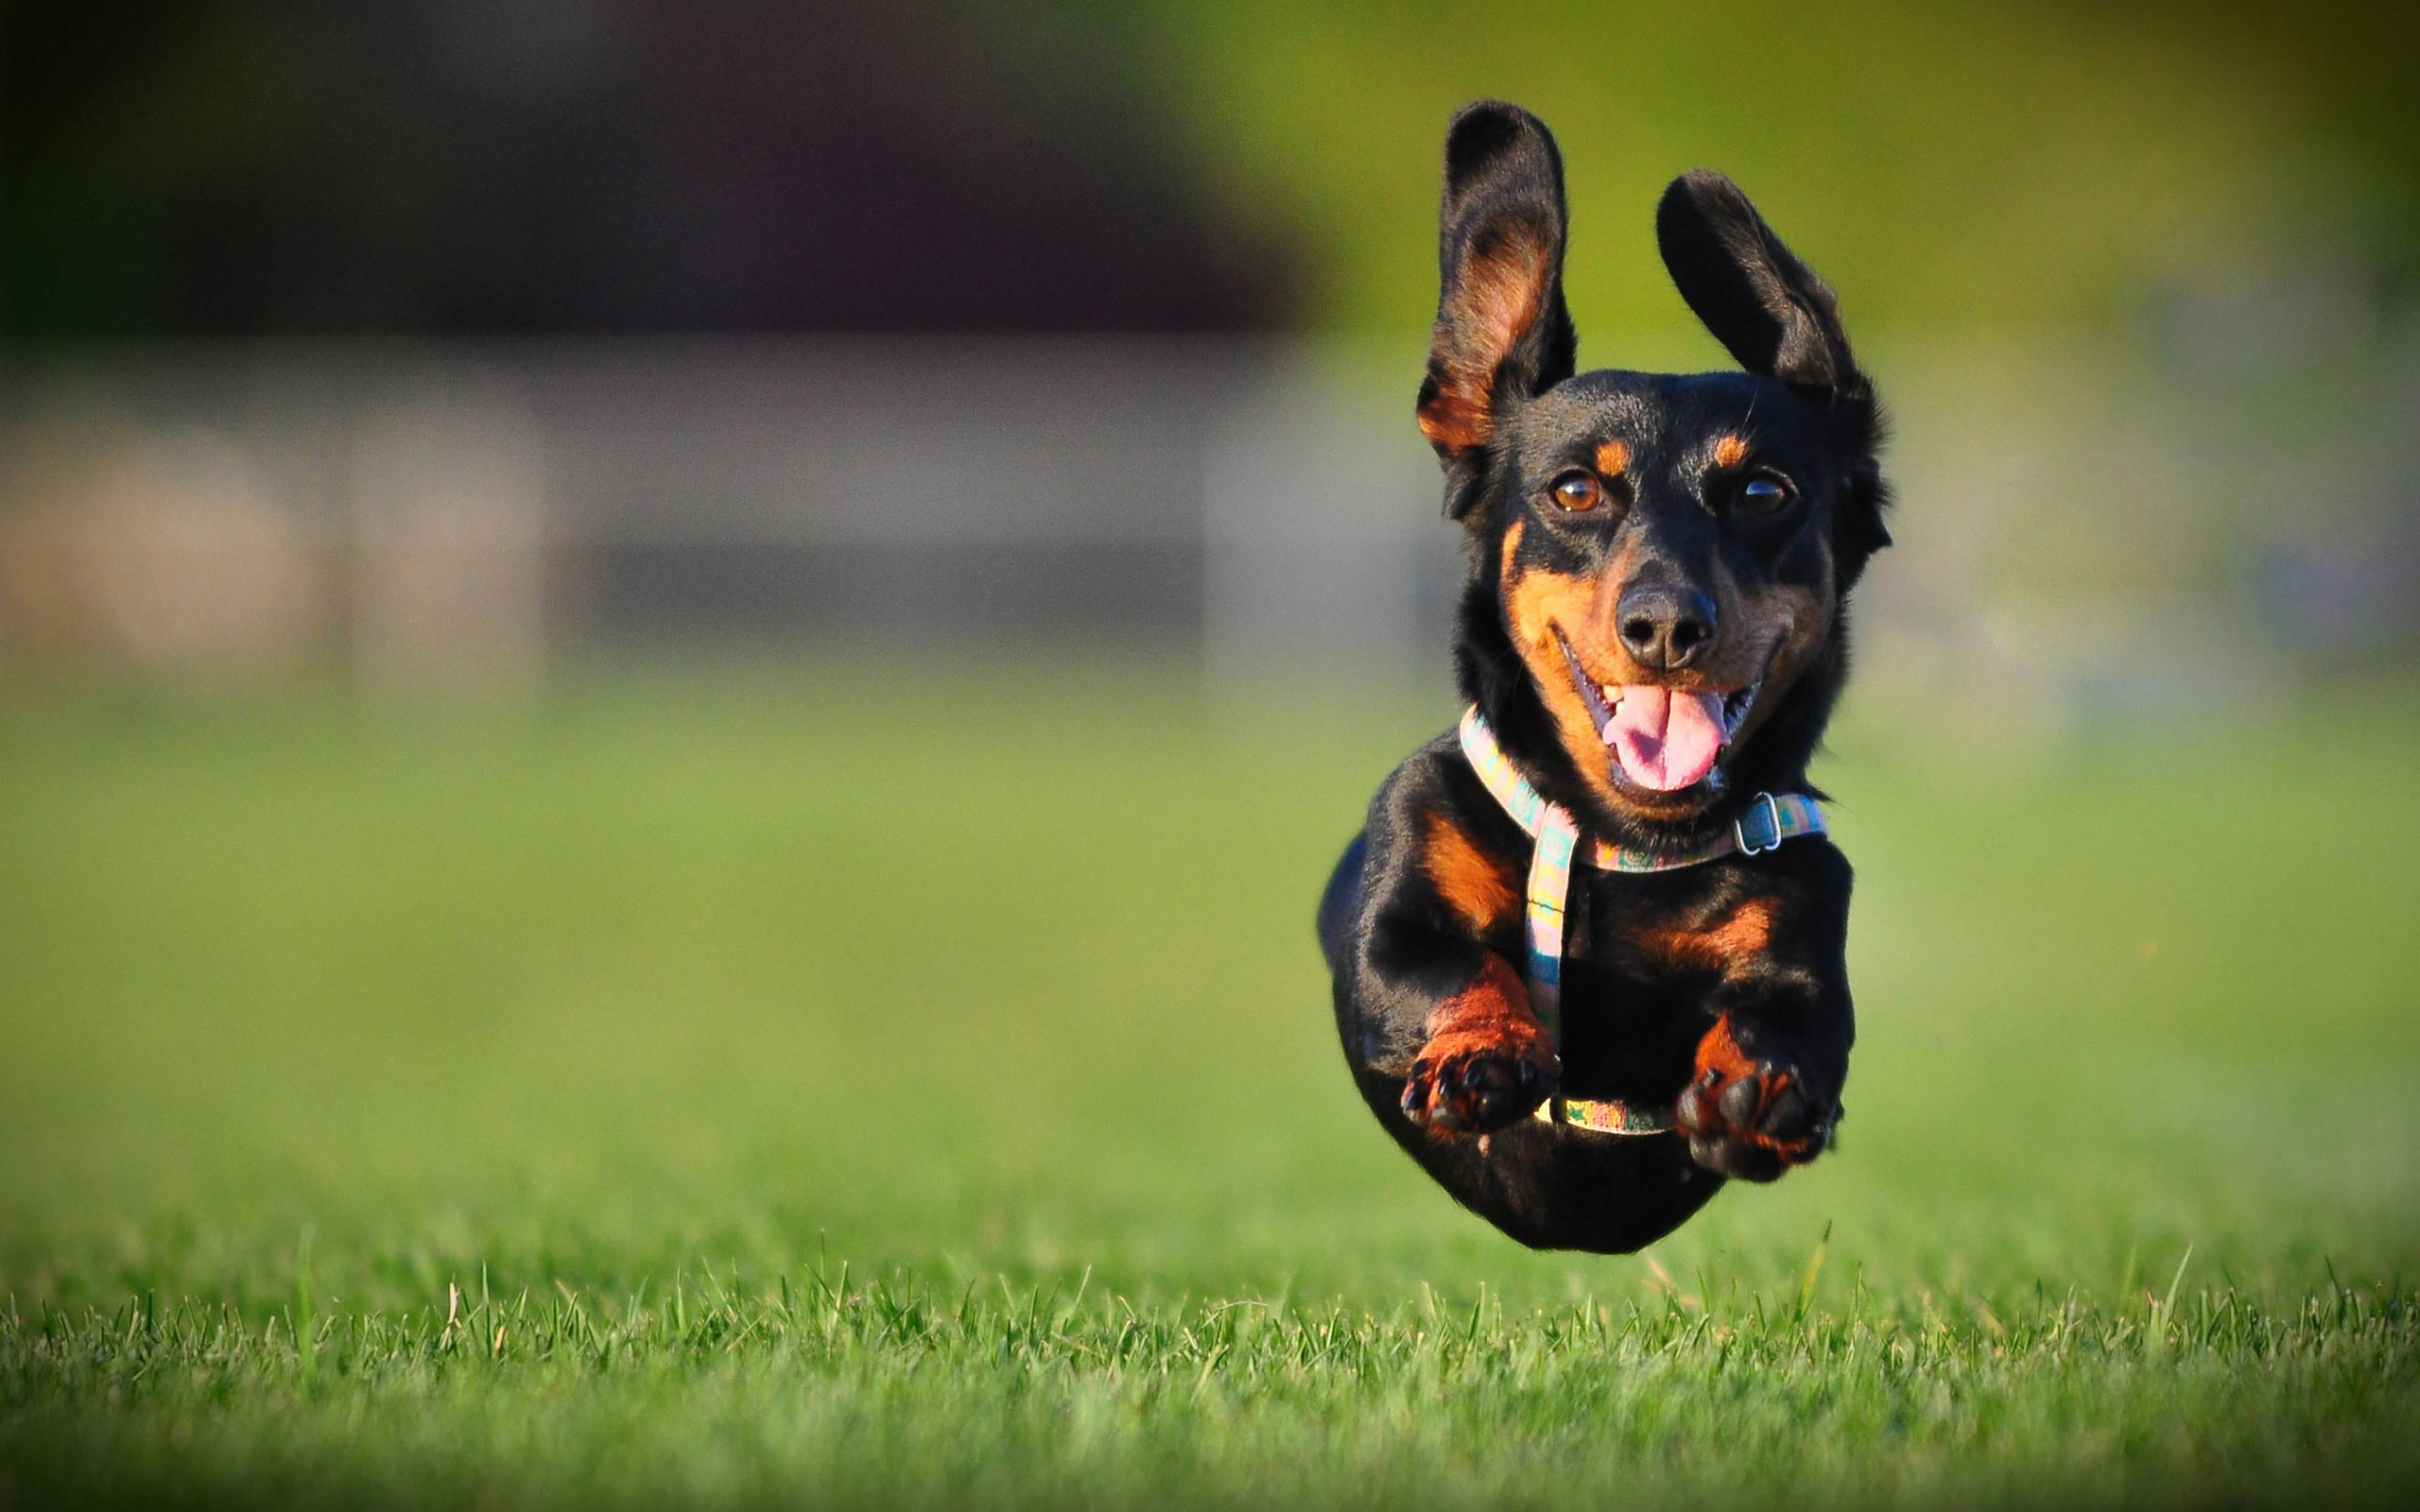 2560x1600 Animal - Dachshund Jump Wallpaper